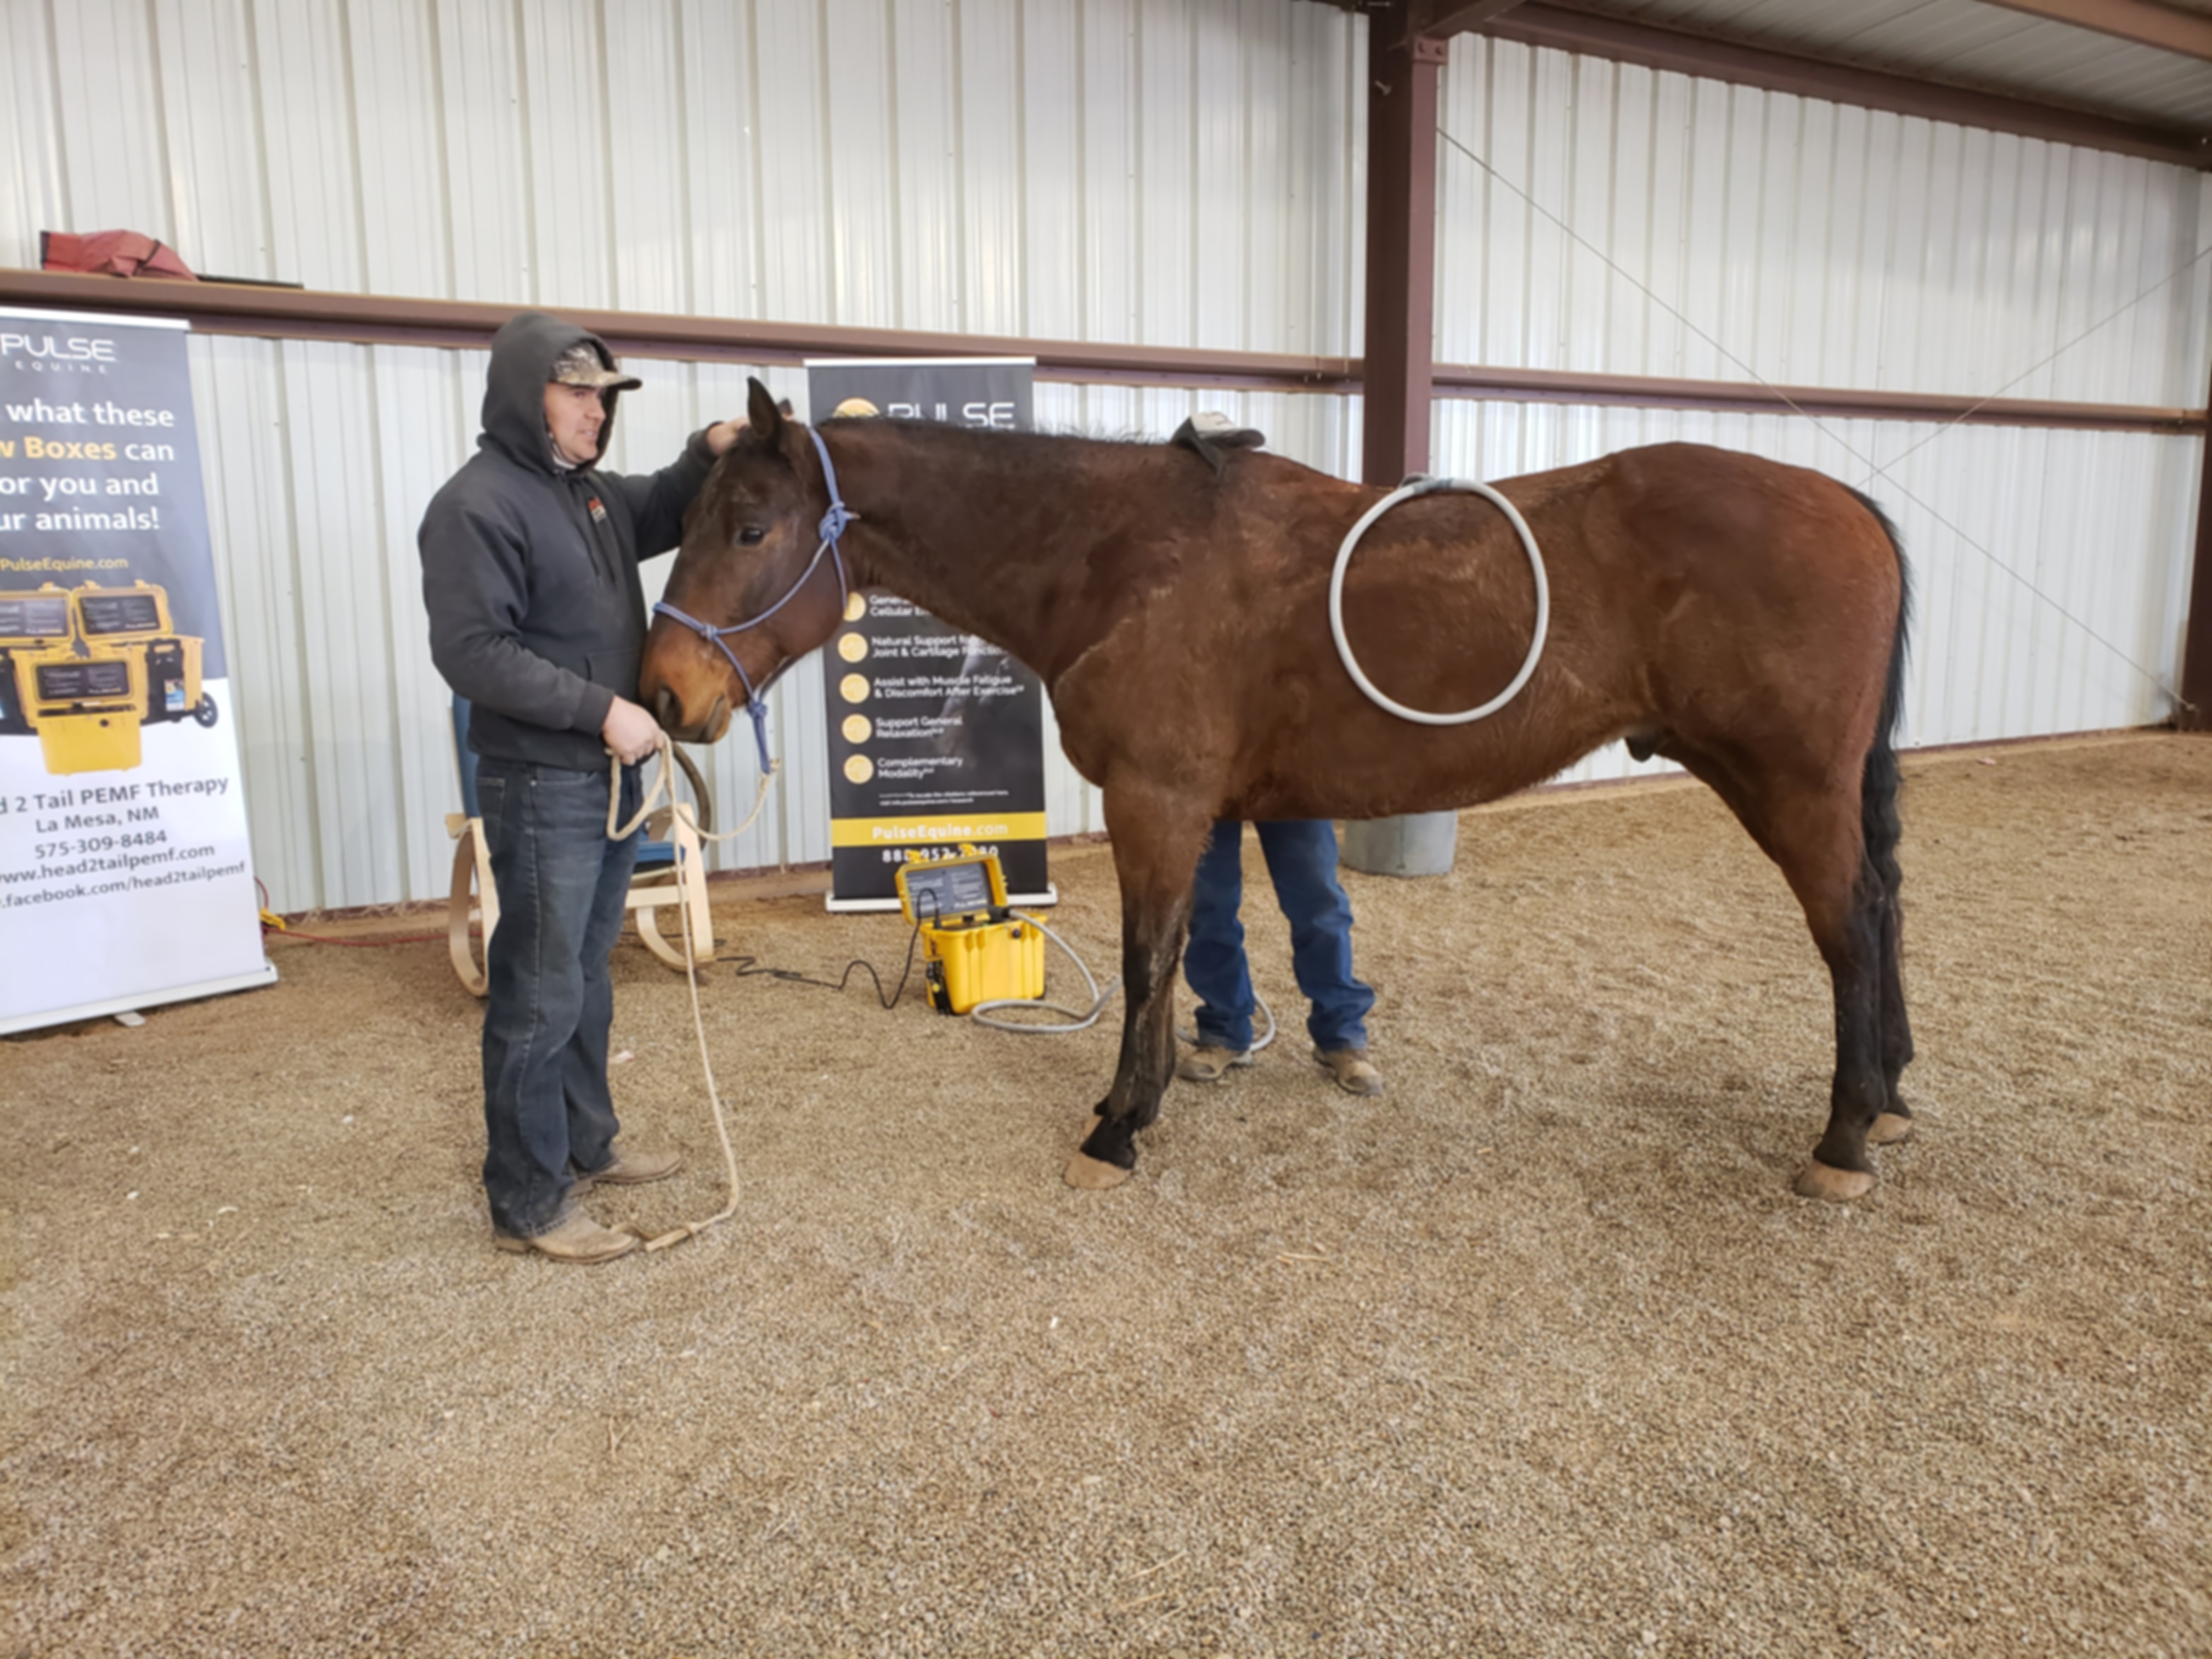 Horse PEMF whole body therapy